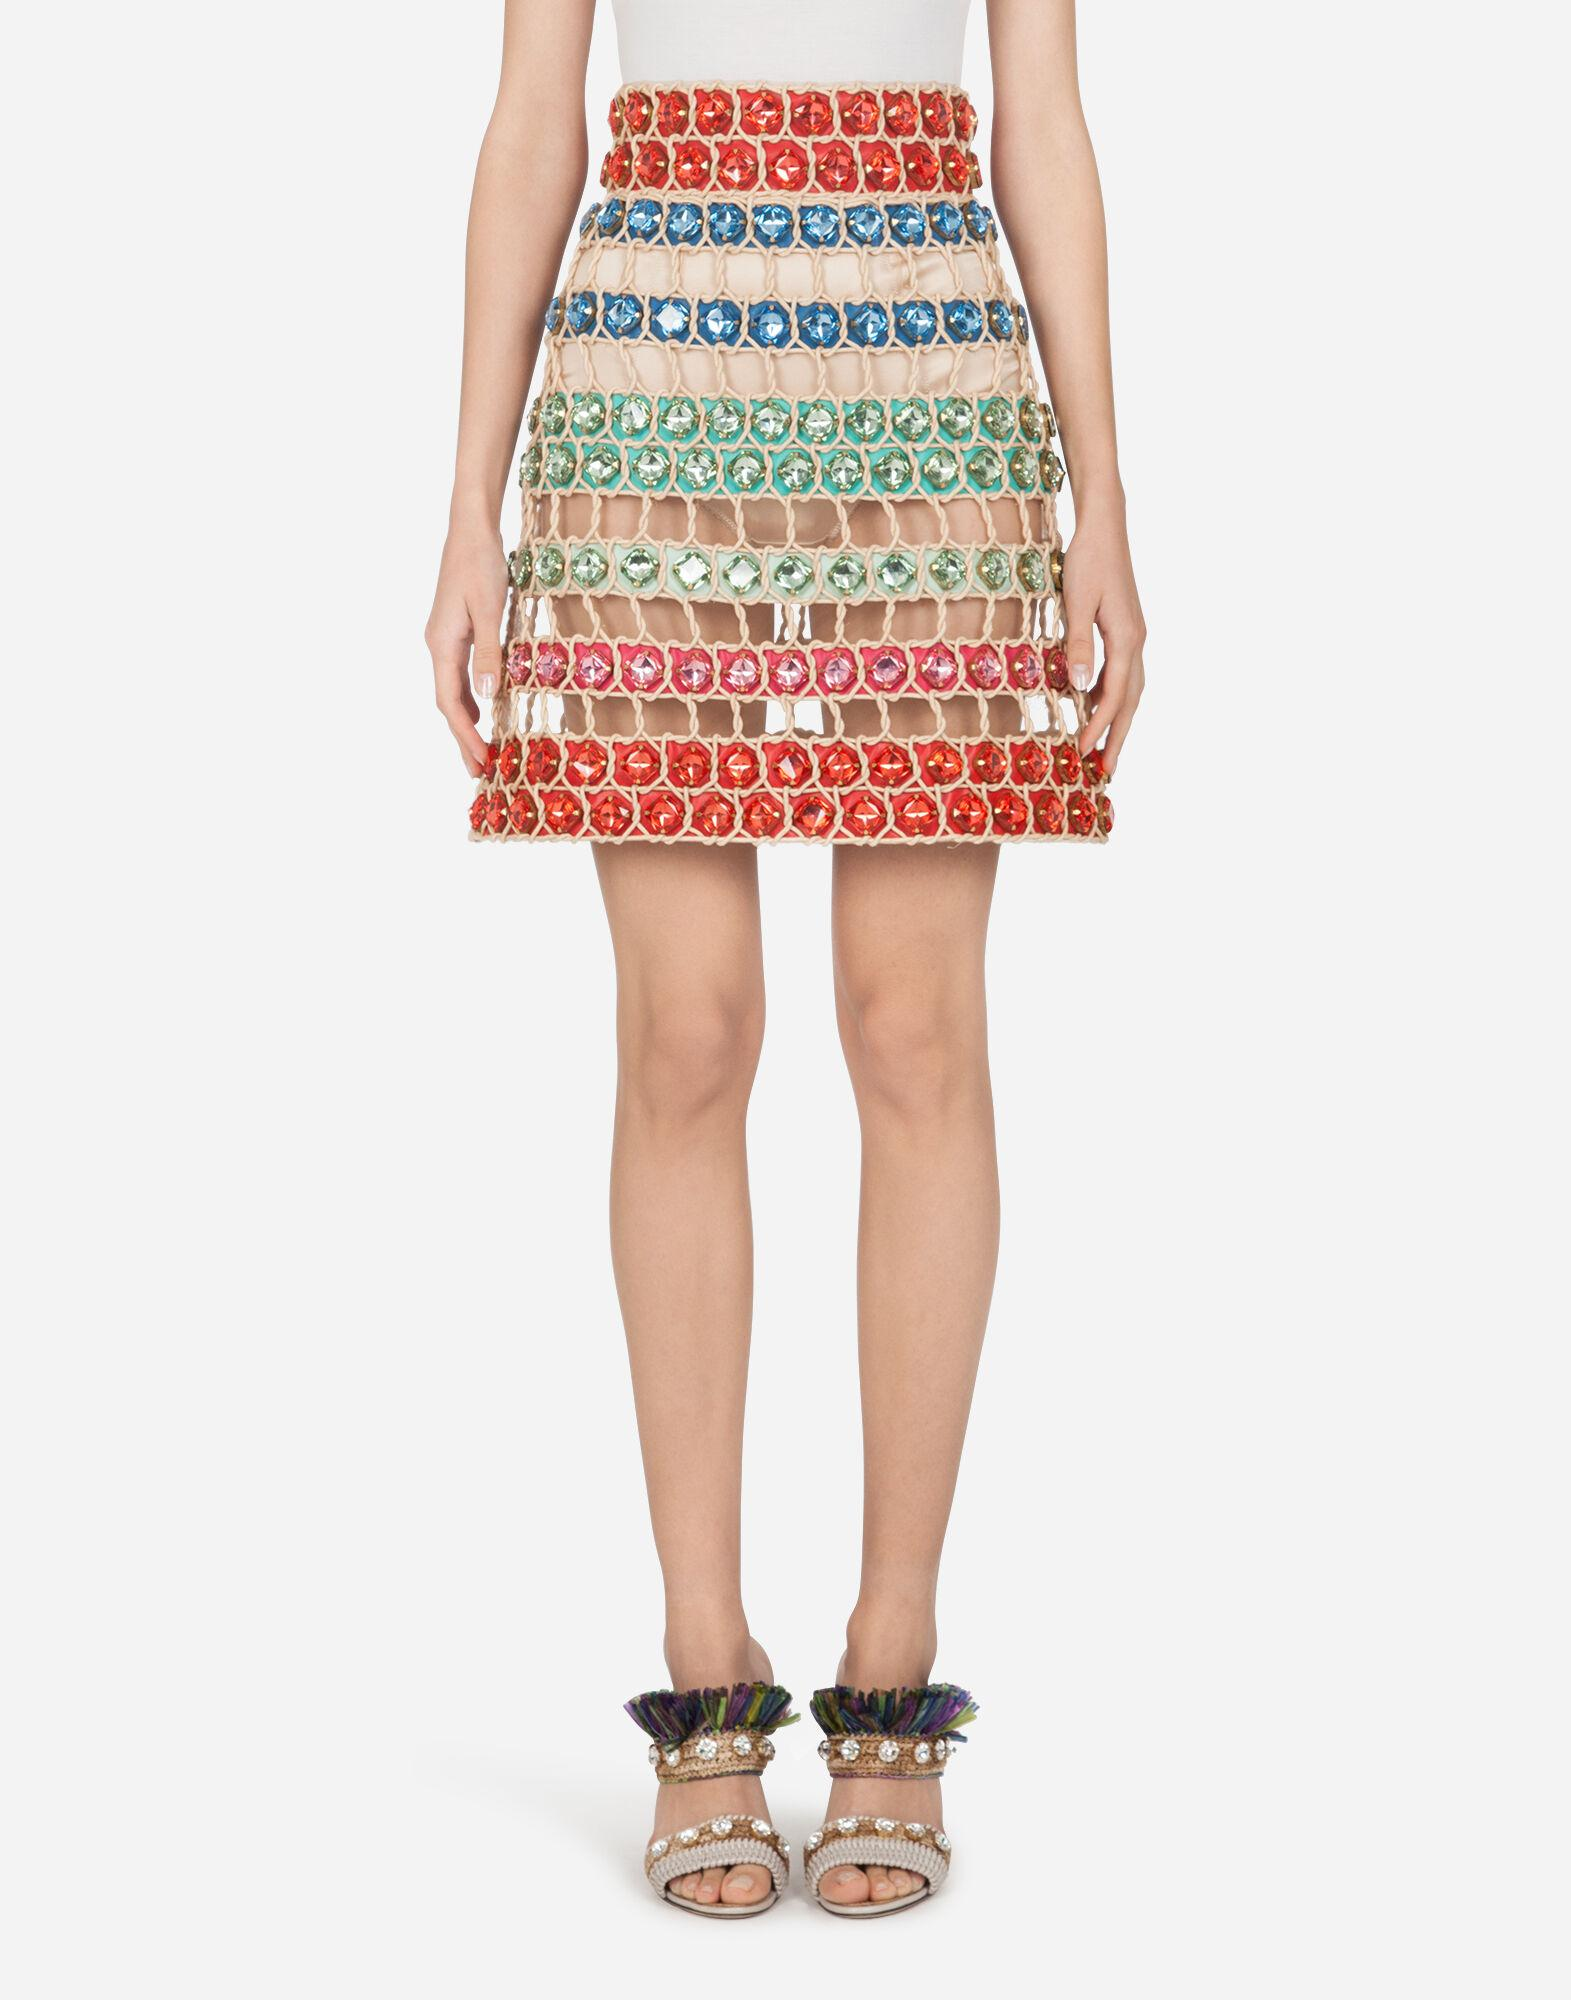 Short a-line skirt made of rope and stones